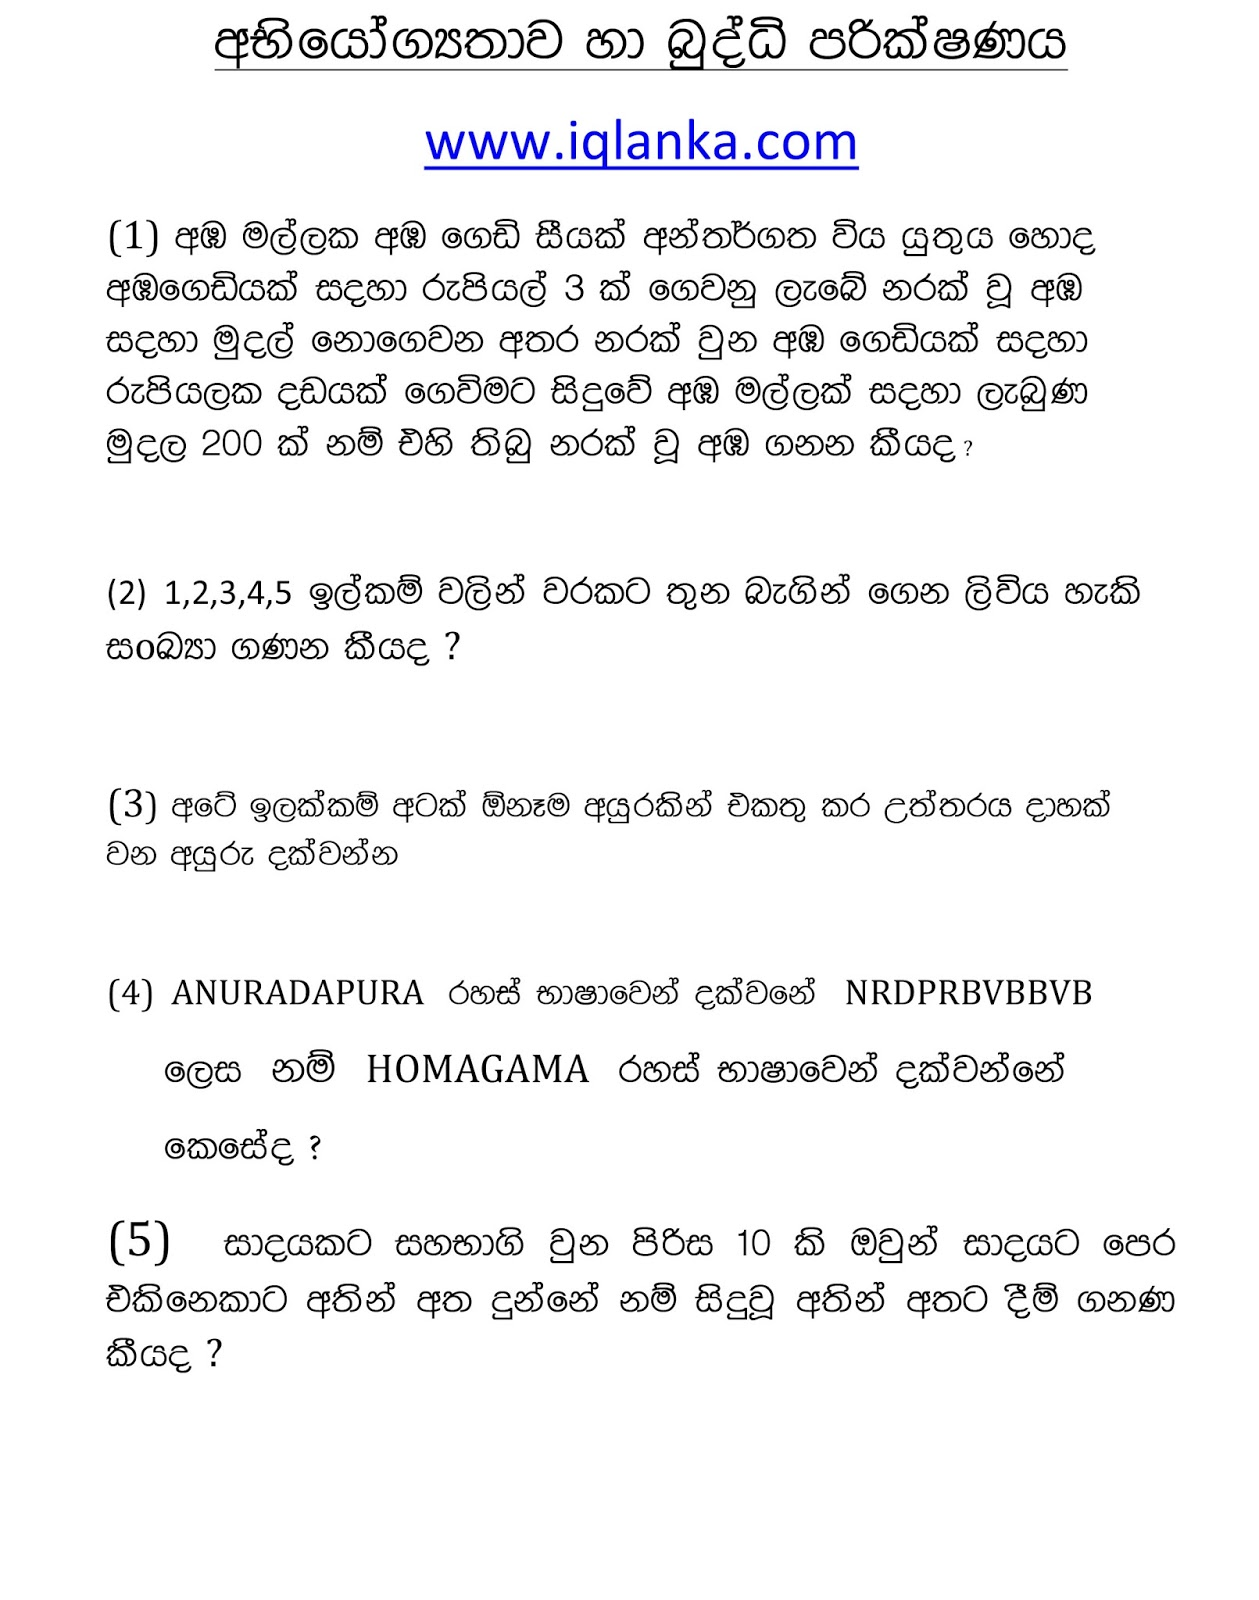 Custom officer exam past papers sri lanka pdf